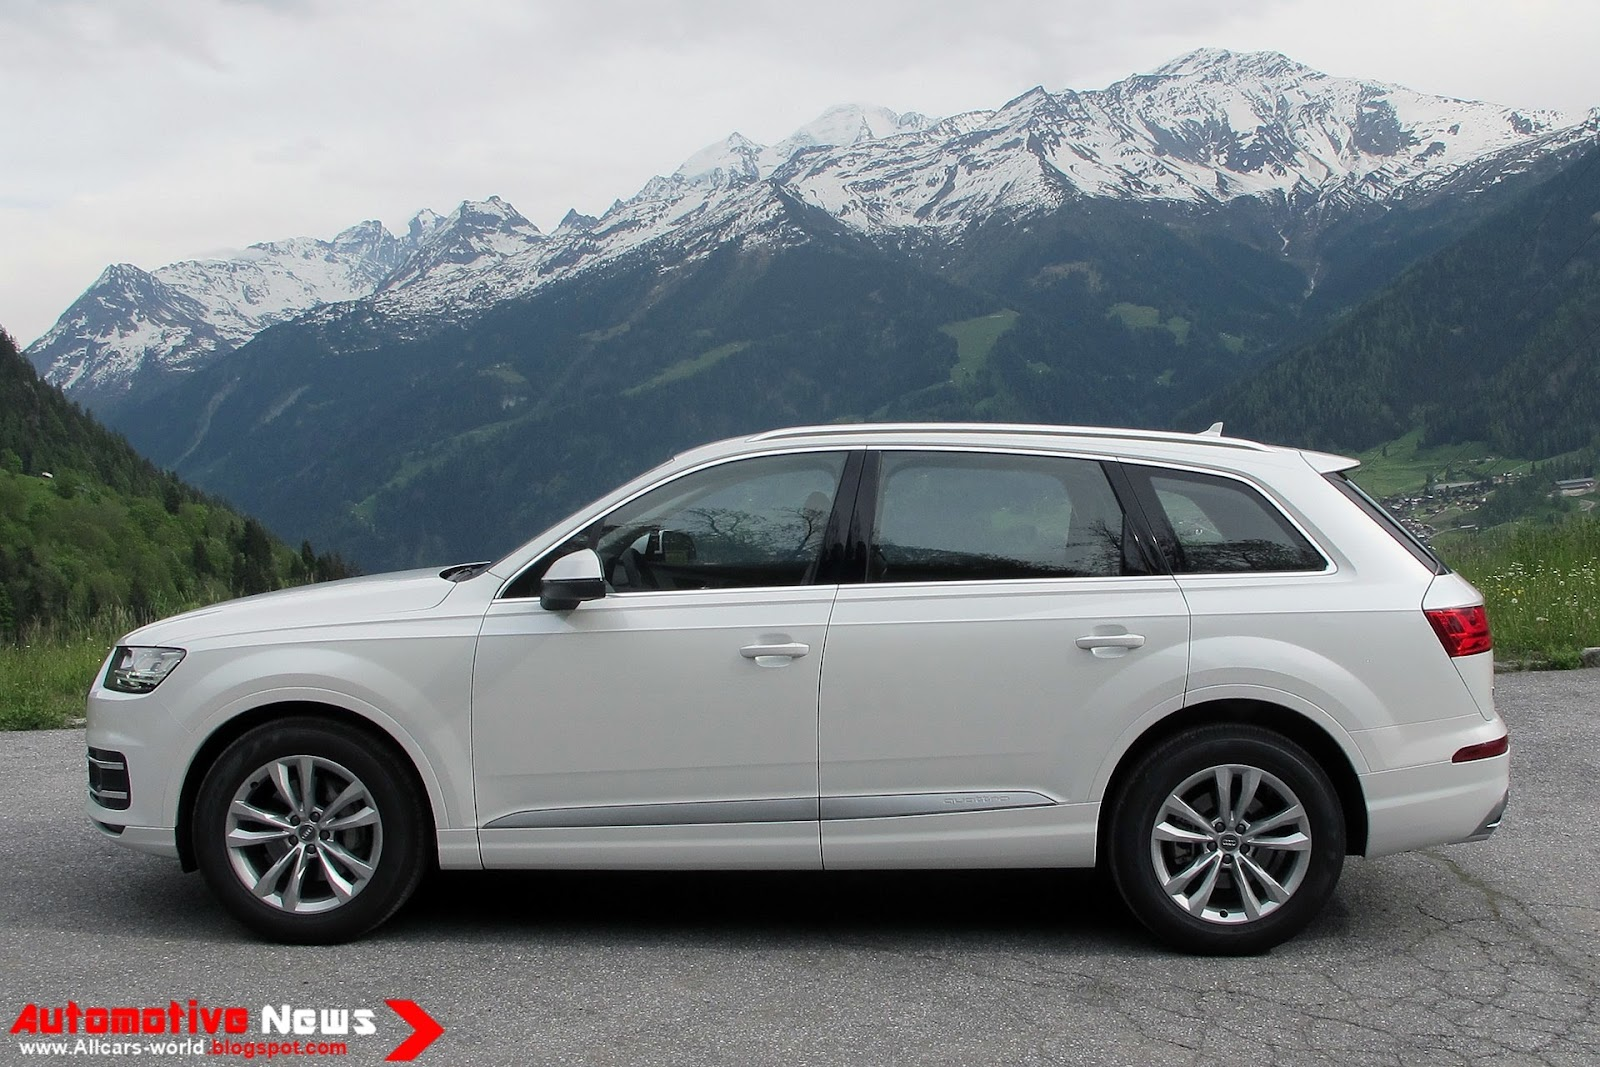 Standard Safety Features For The 2017 Q7 Include Antilock Brakes Ility And Traction Control Front Seat Side Airbags Full Length Curtain